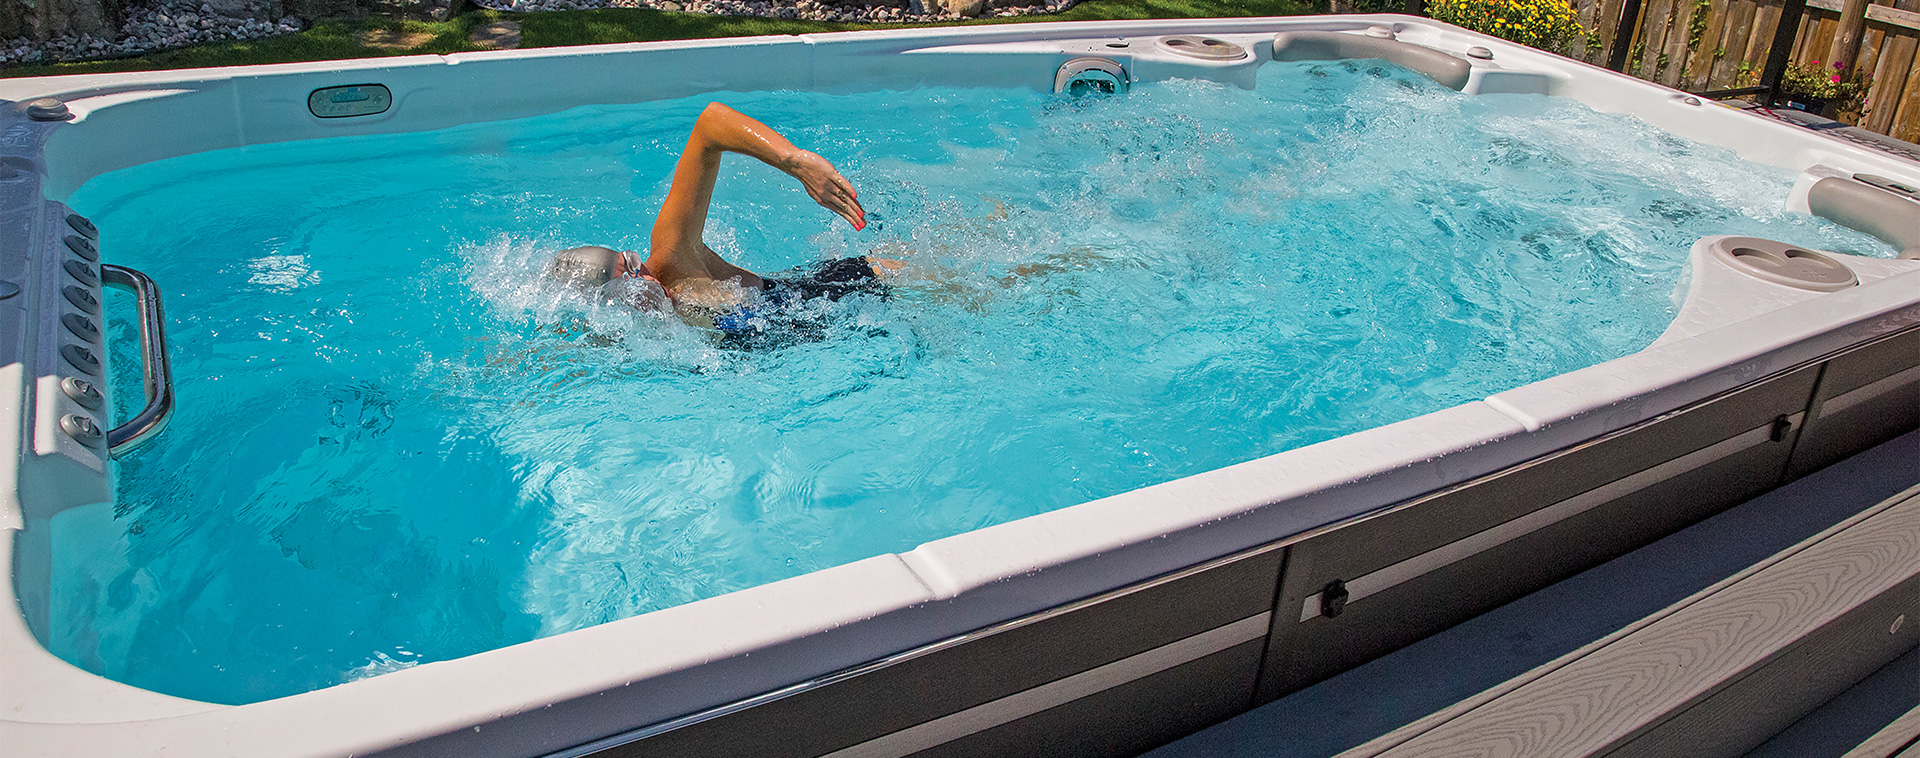 Miami Swim Spas, Hot Tubs | Financing Available | Pool Spa ...